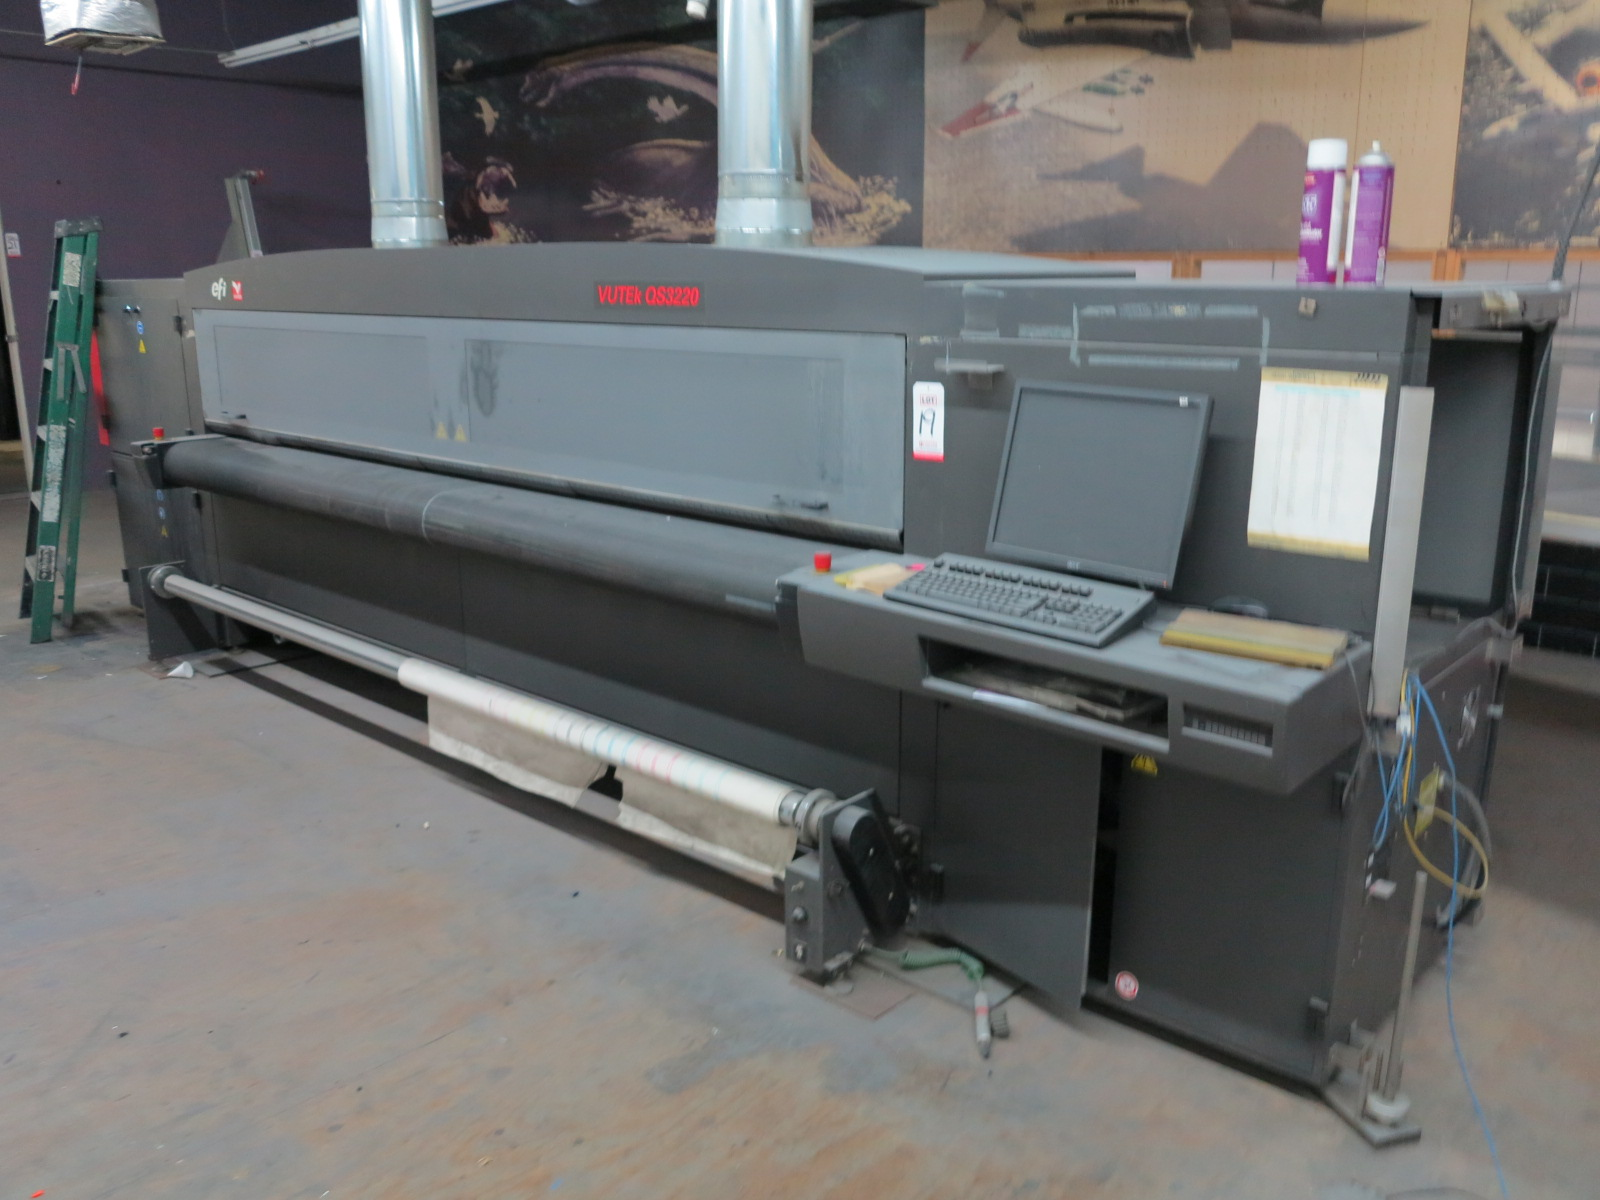 2012 EFI VUTEK QS3220 SUPER LARGE FORMAT PRINTER, FOR RIDGID AND ROLL-TO-ROLL PRINTING, S/N 630312